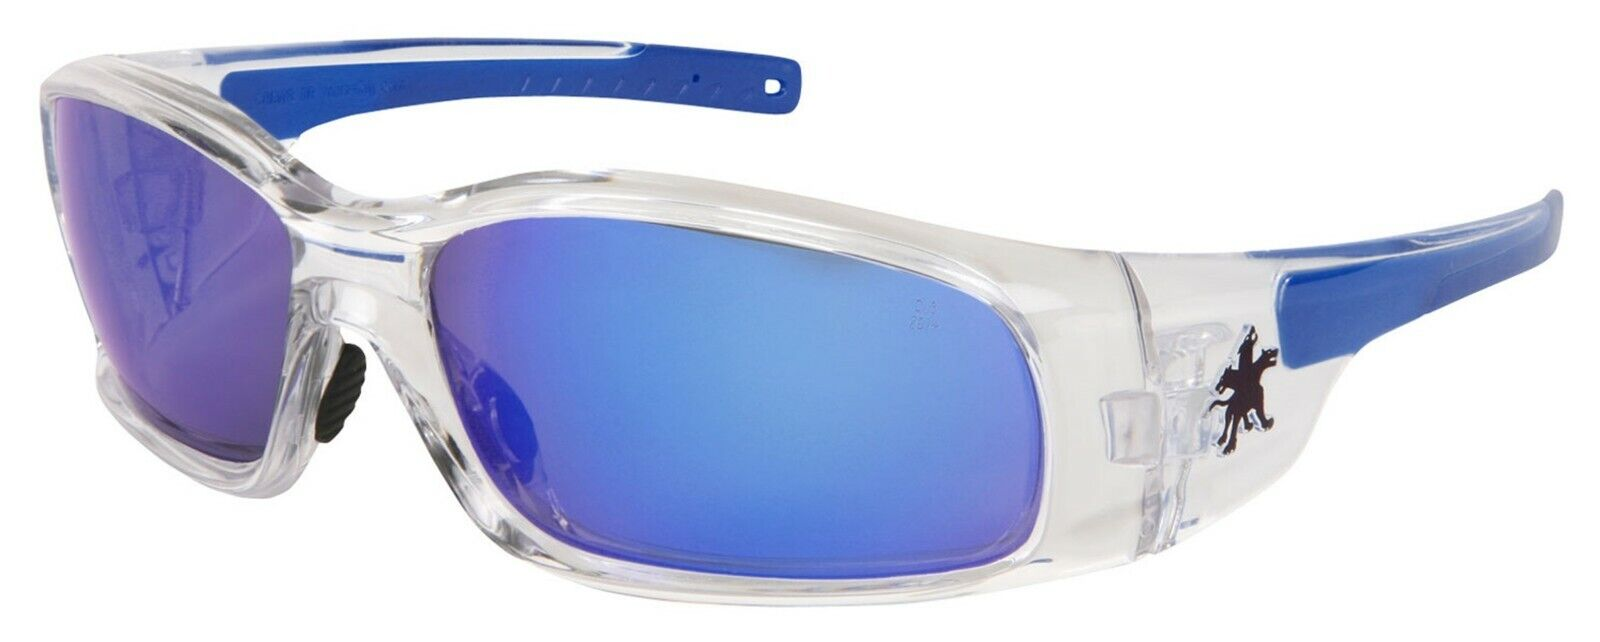 MCR Safety/Crews SR148B Clear Frame -Blue Diamond Mirror Safety Glasses Business & Industrial